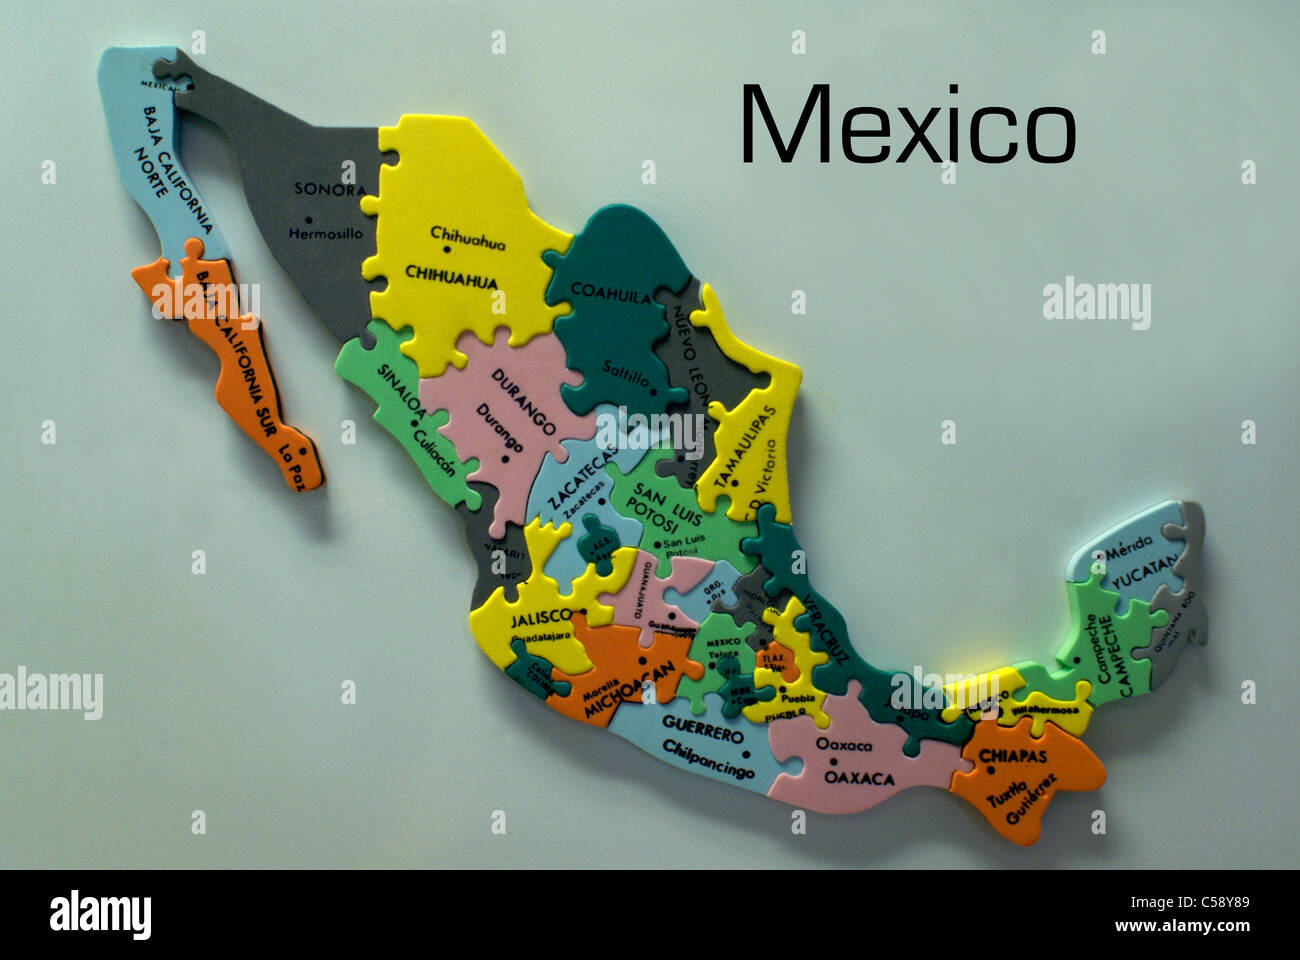 colorful-jigsaw-map-of-mexico-puzzle-sho